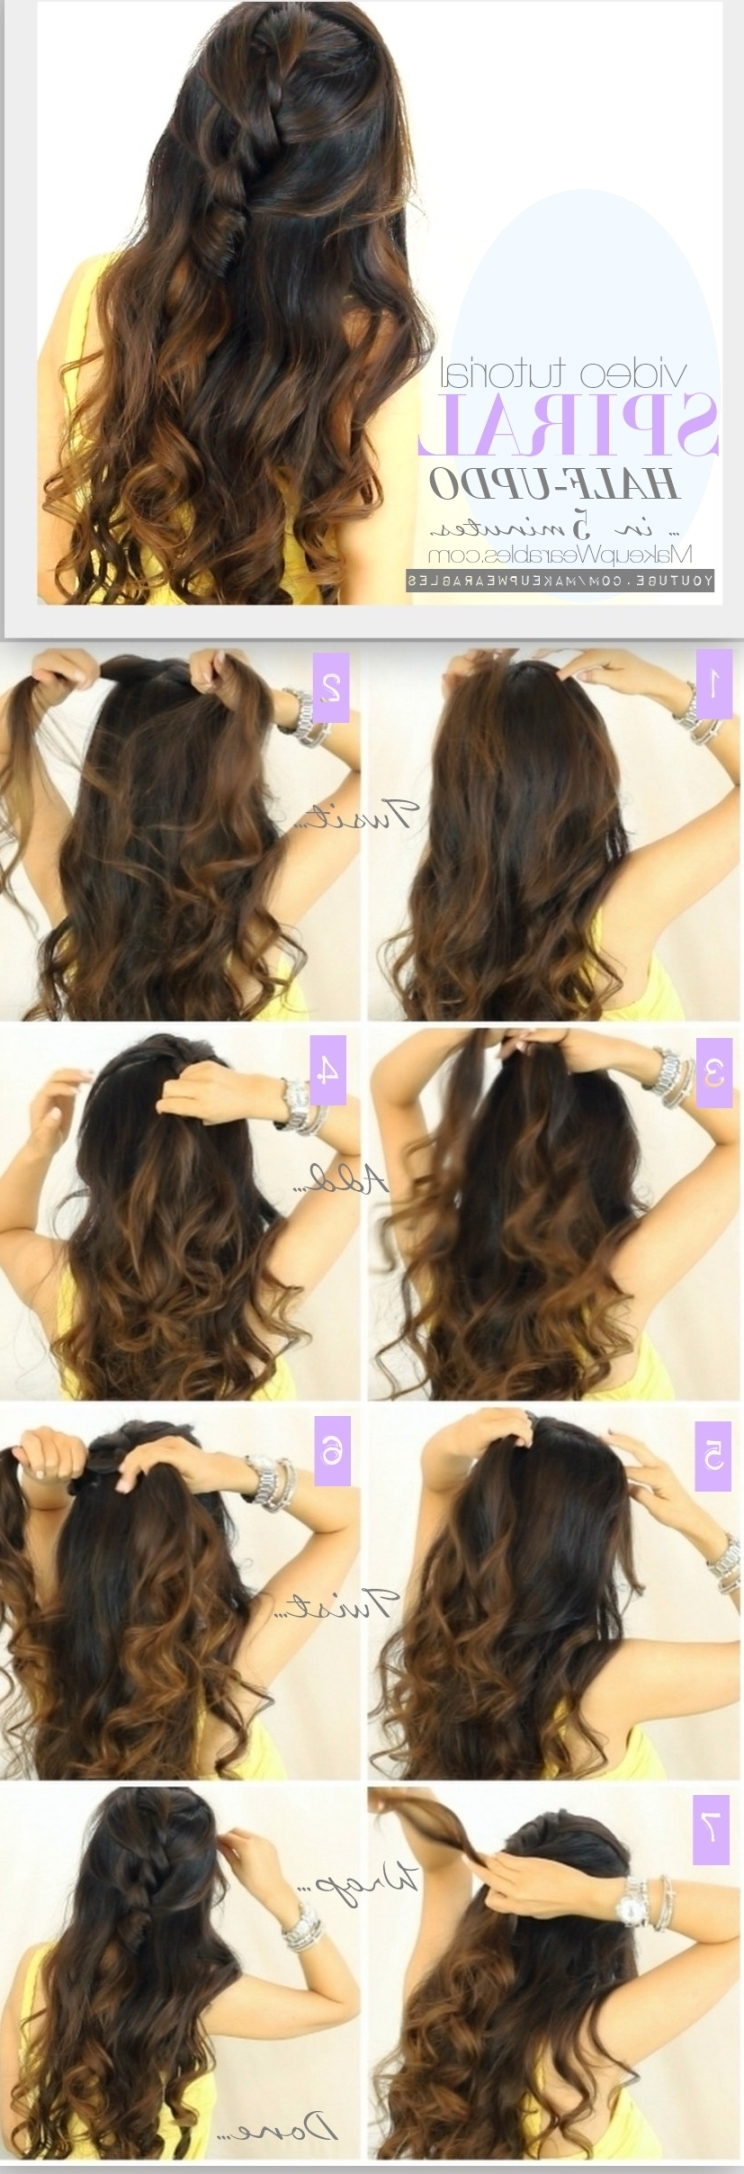 13 Half Up Half Down Hair Tutorials Pertaining To Diy Half Updo Hairstyles For Long Hair (View 4 of 15)